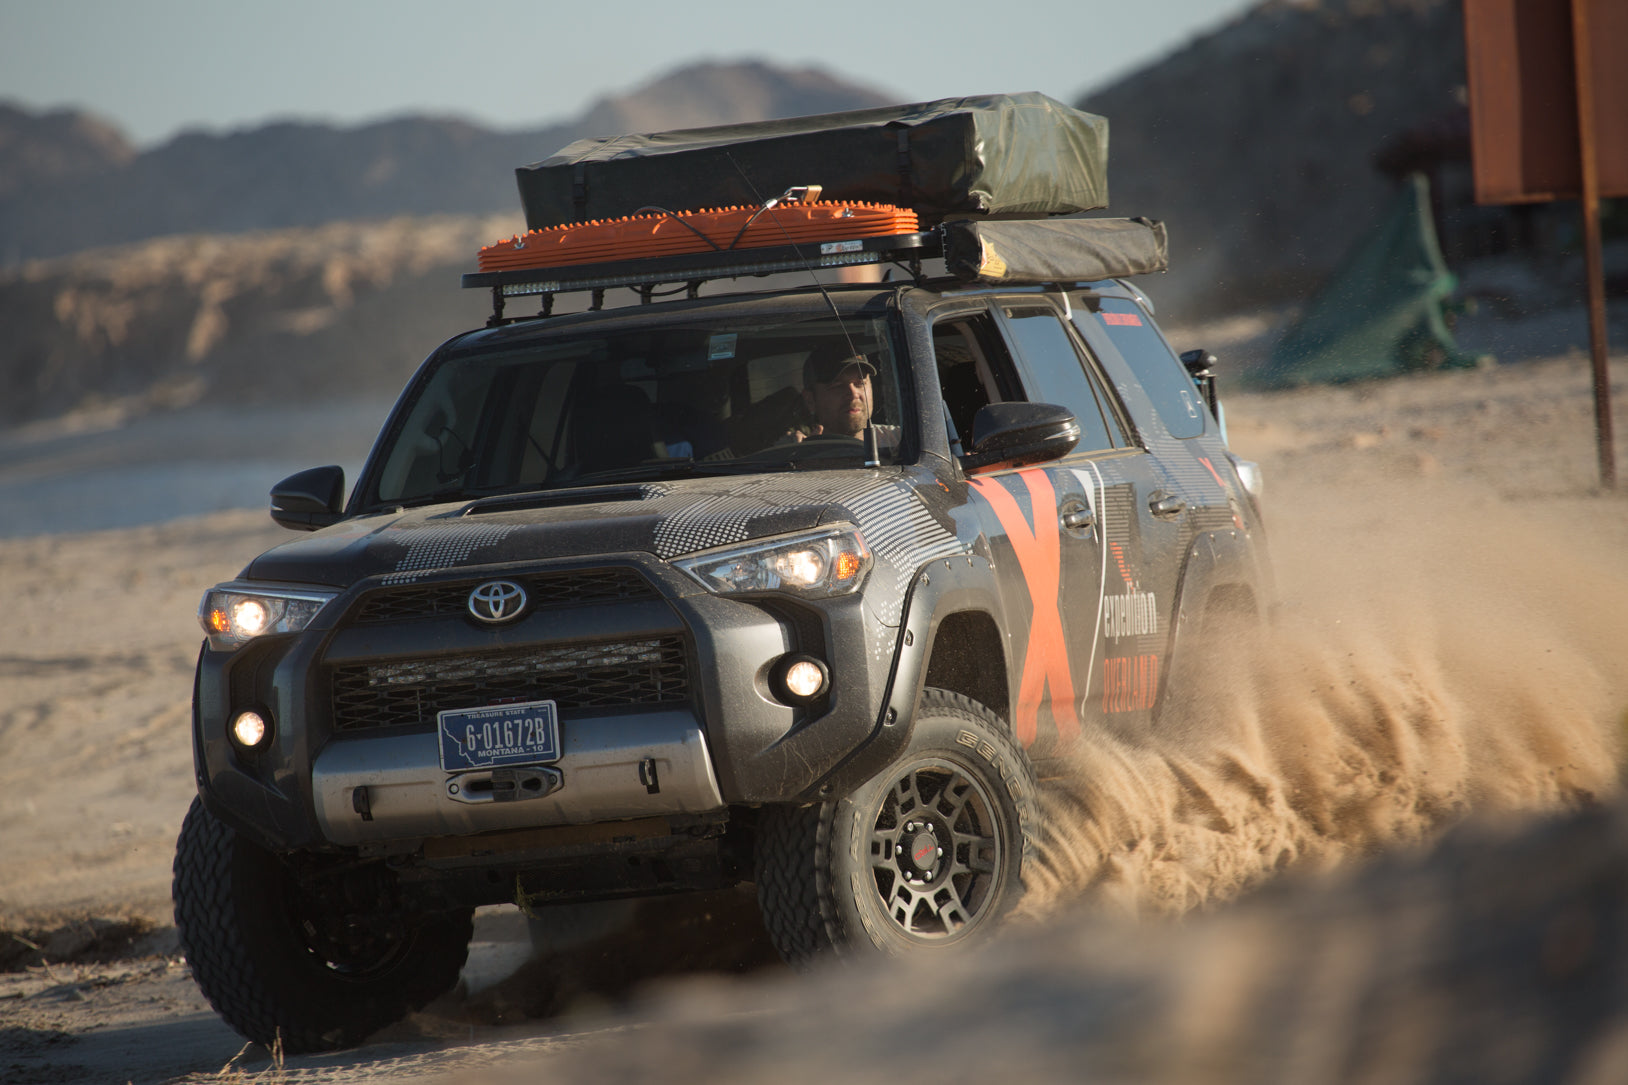 Choosing the Right Roof Rack for Your Adventure Vehicle